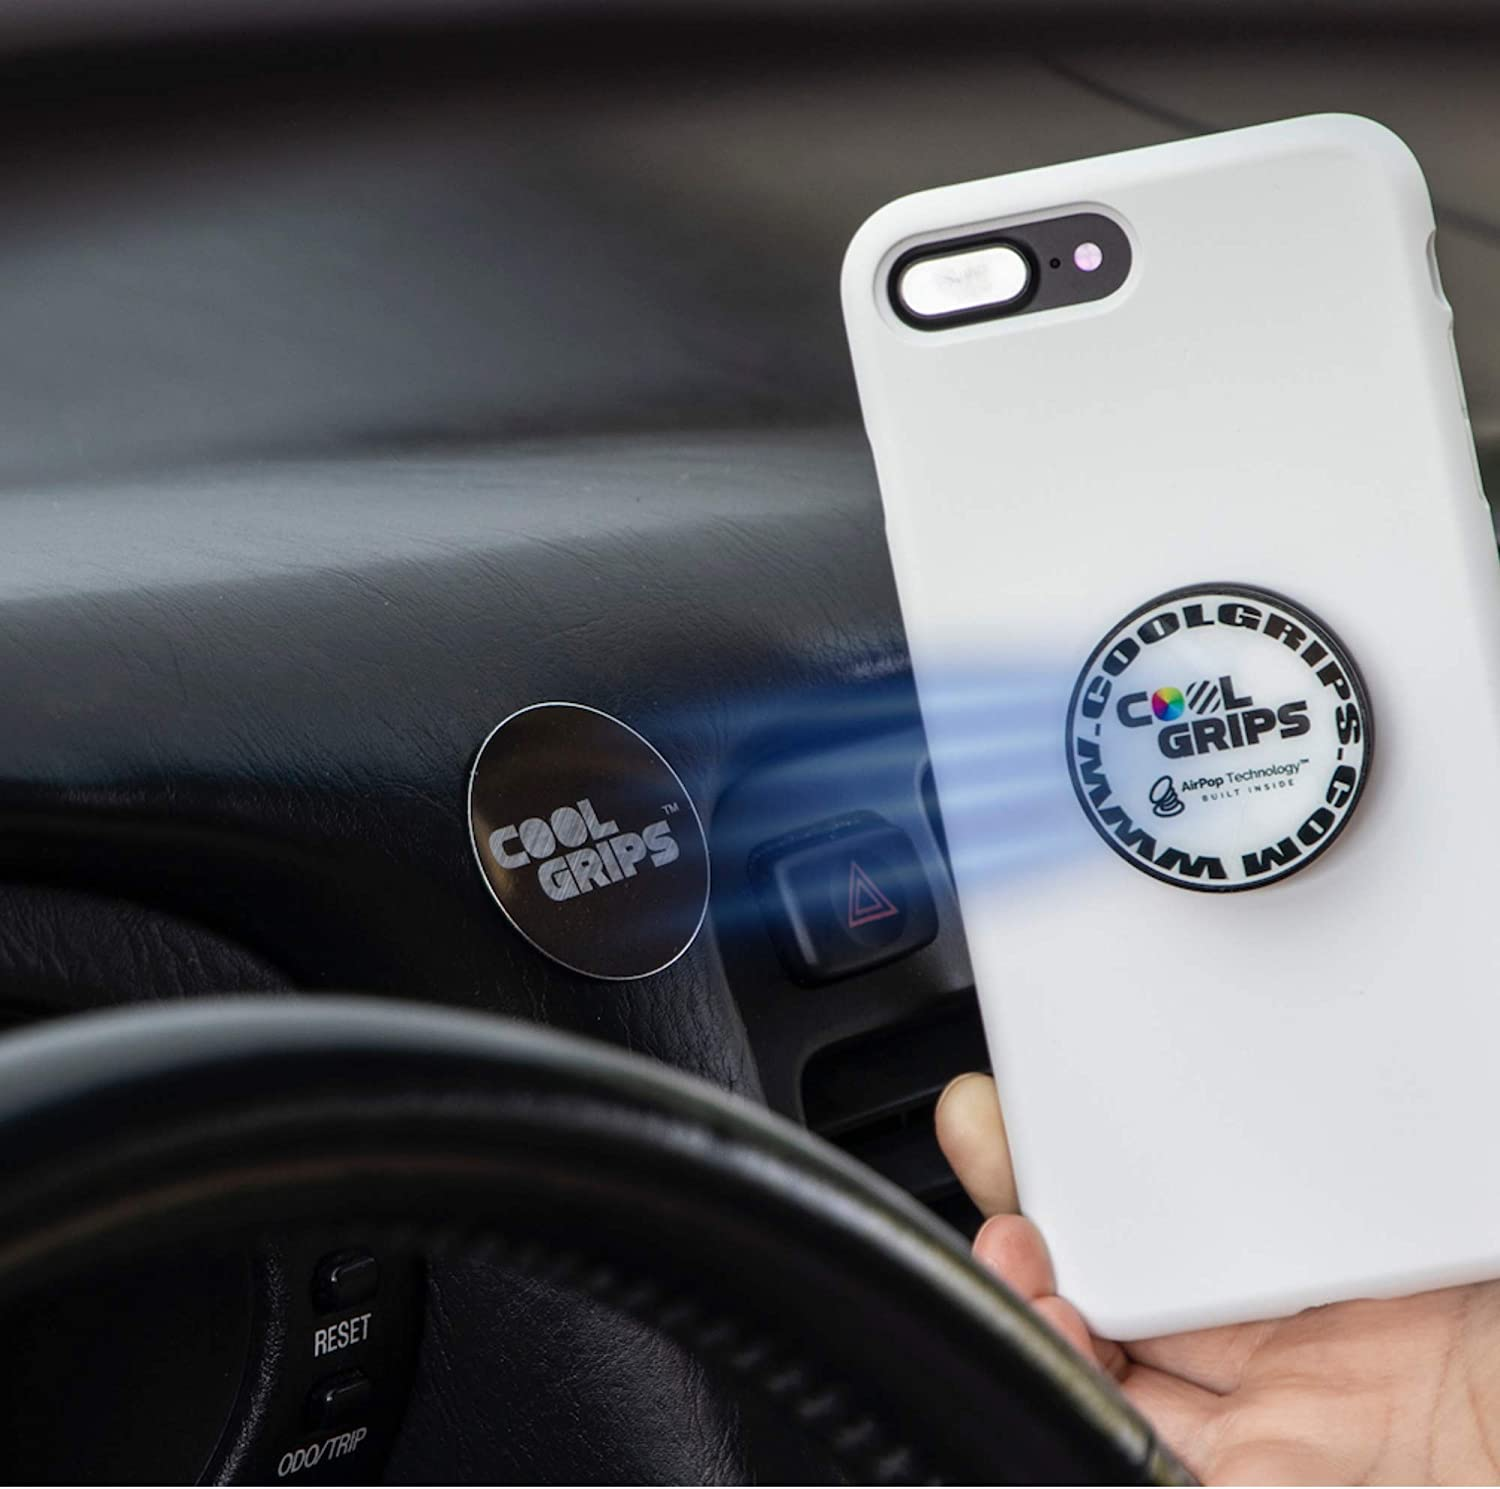 Stand Cell Phone Grips by Coolgrips- Marble Slab and Mount-Flexible Soft Middle Allows for a Comfortable fit-mounts to Any Metal Surface Collapsible Magnet Phone Grip